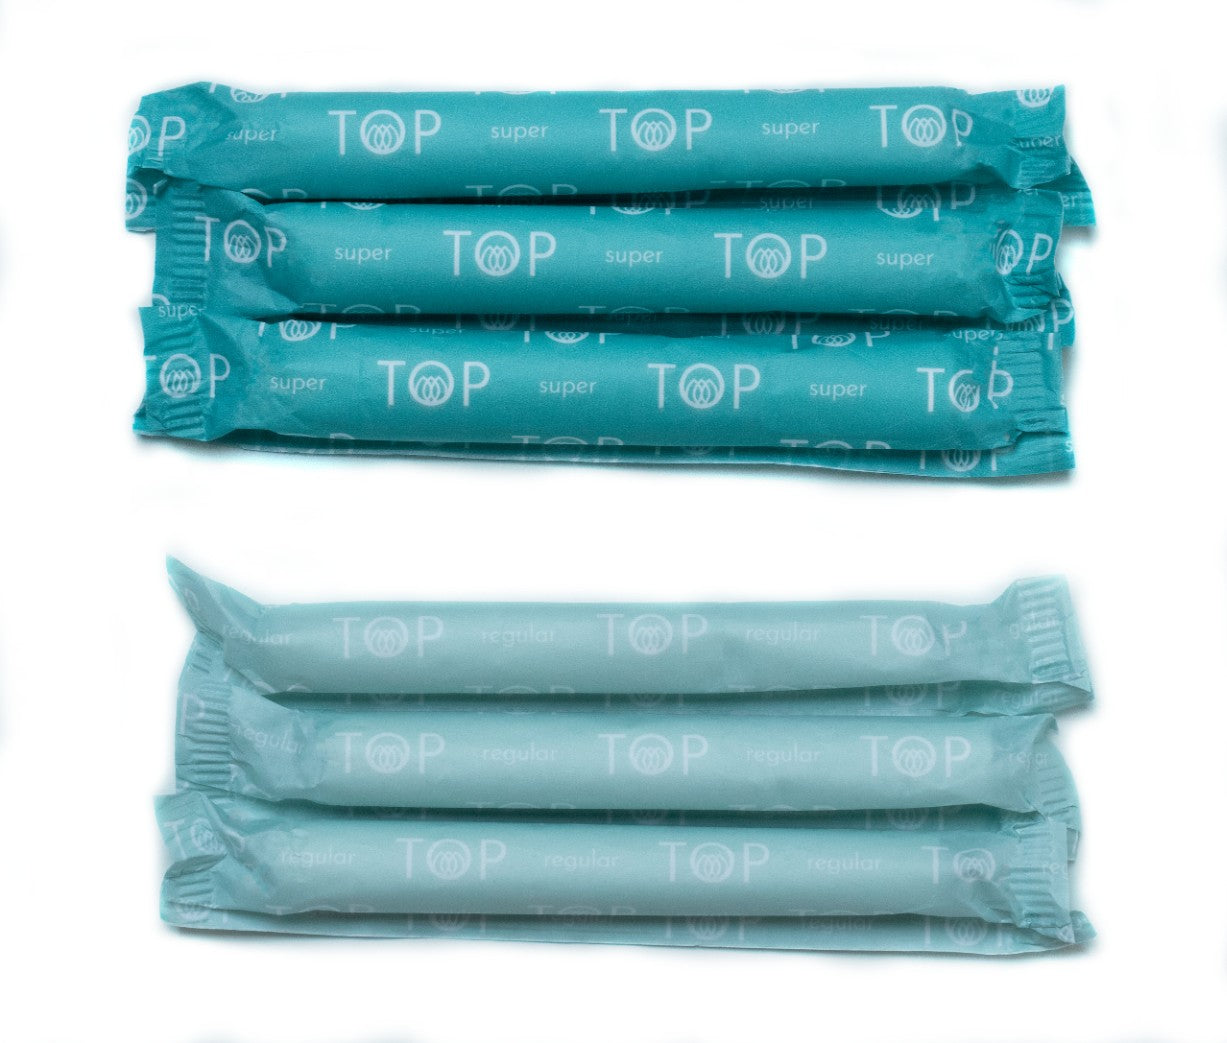 TOP Organic Cotton Regular & Super Tampons with Cardboard Applicator Variety Pack